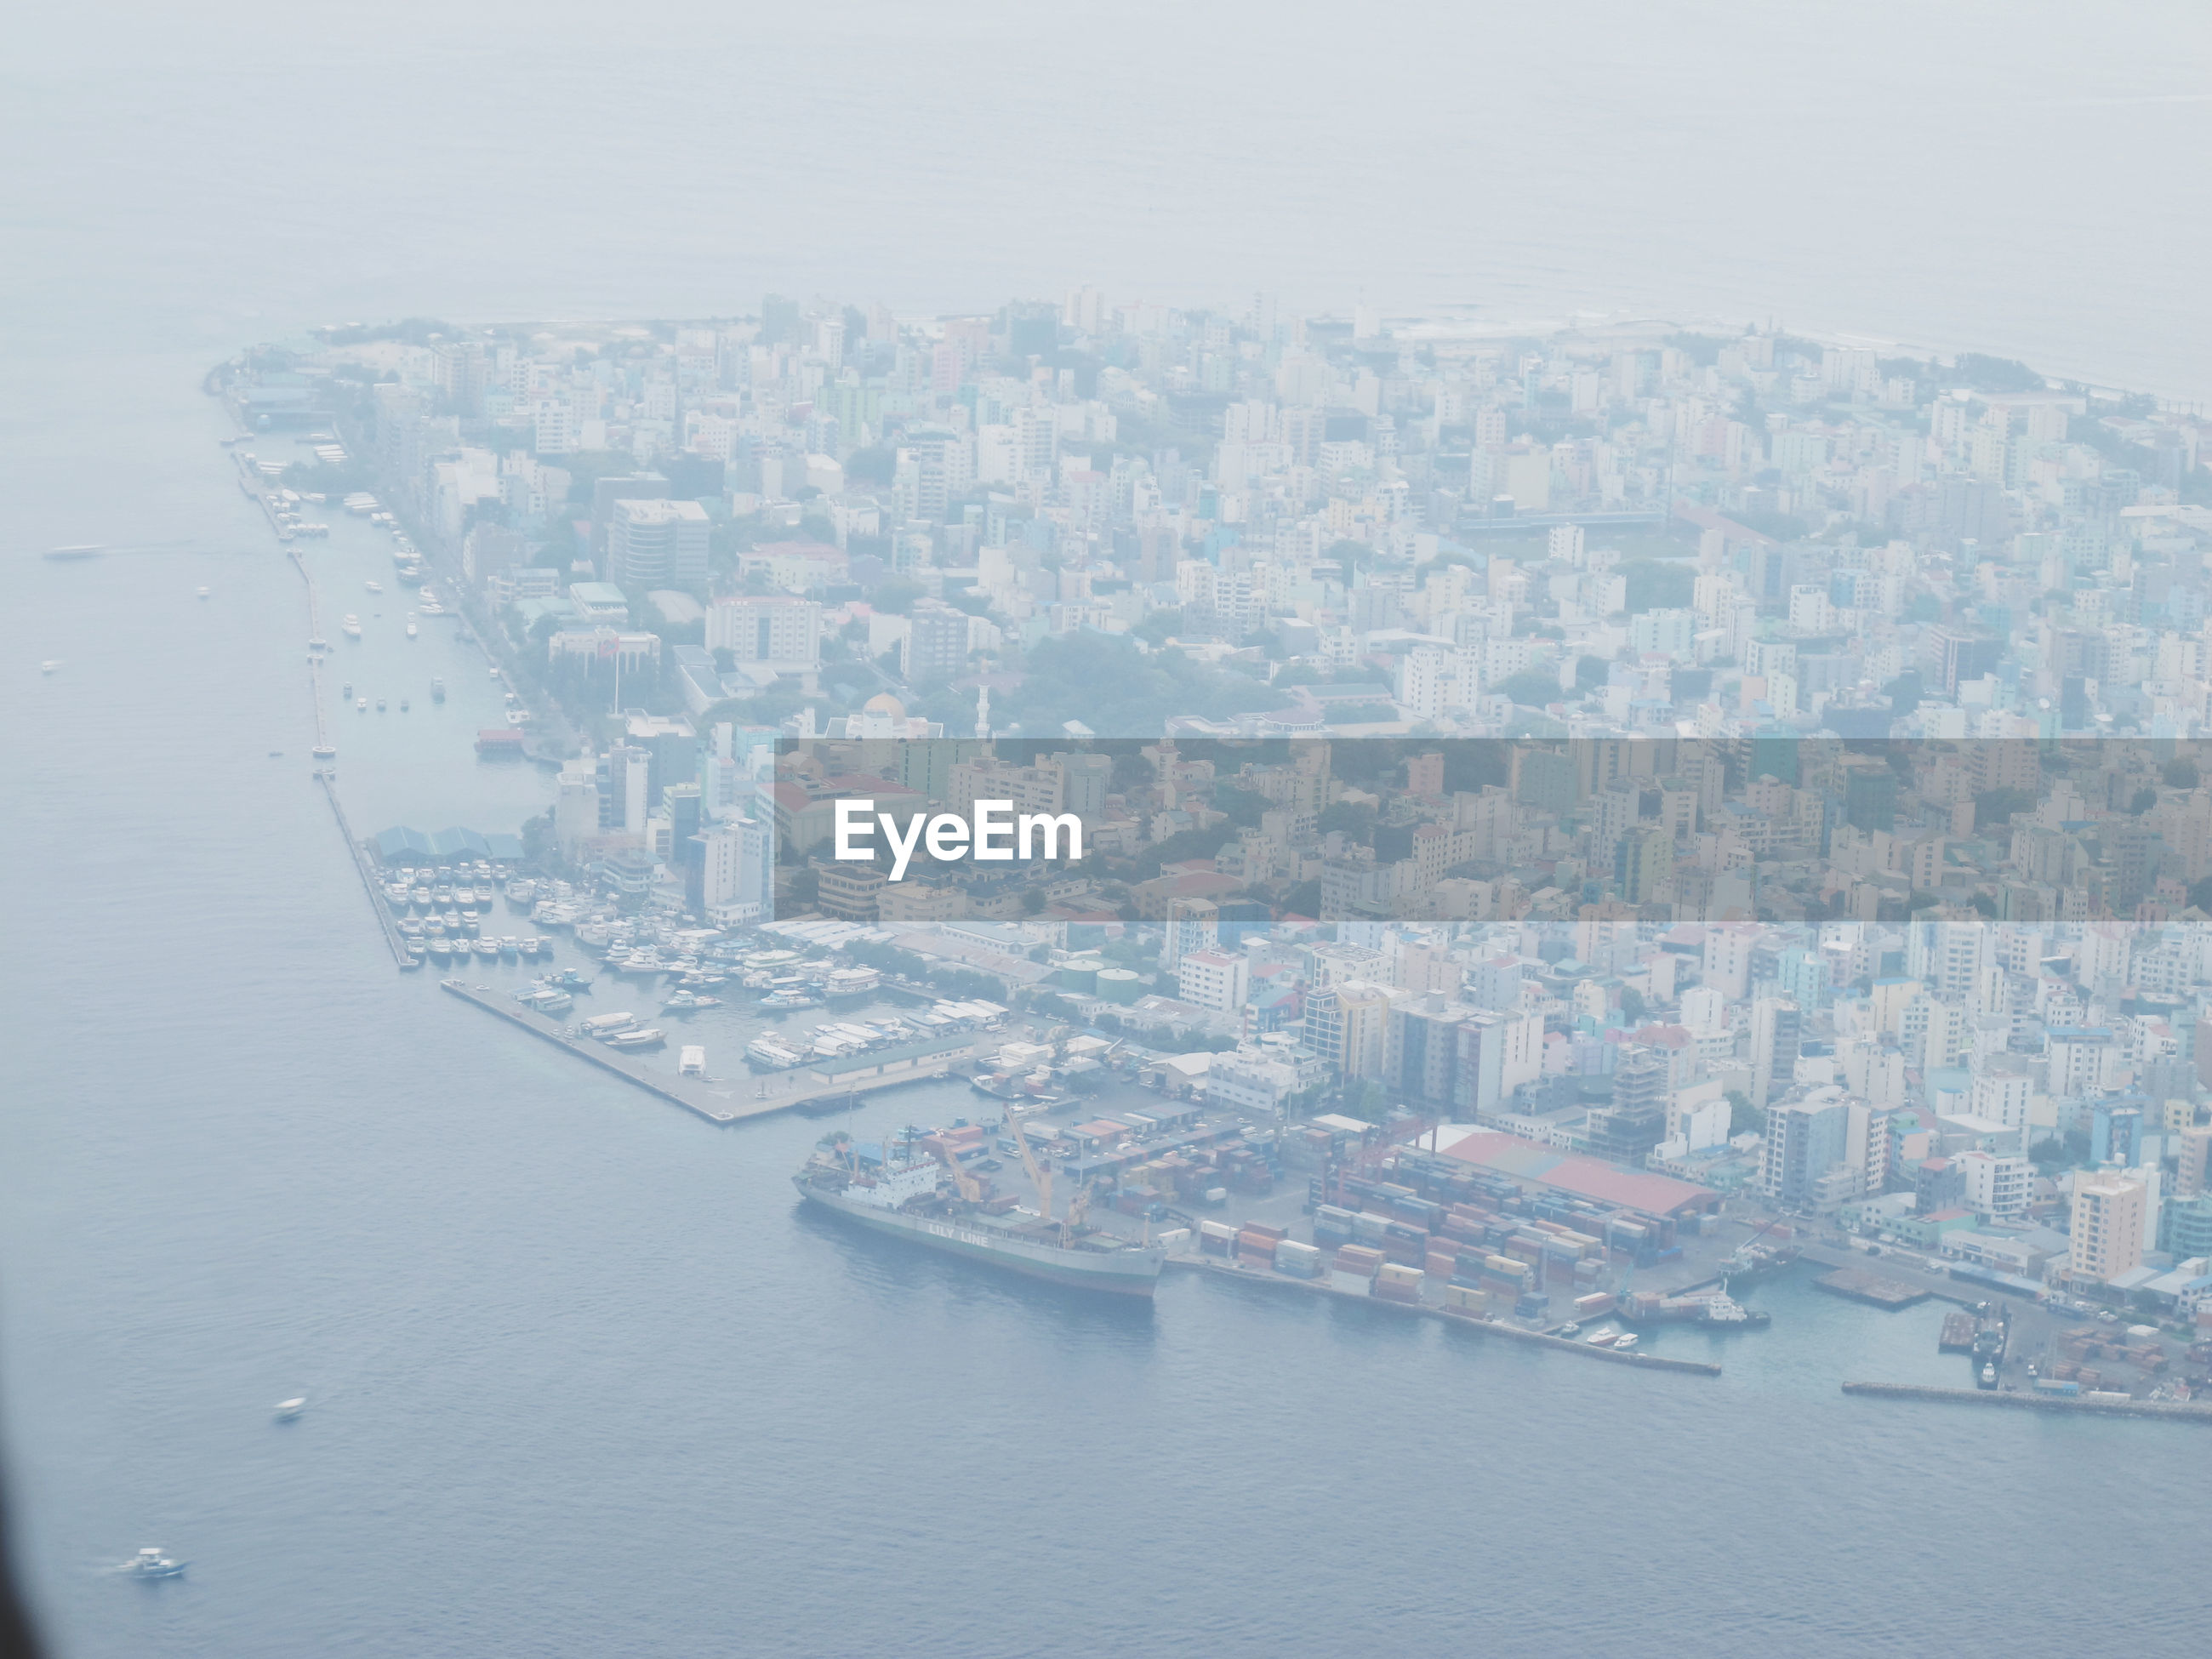 Aerial view of city on island